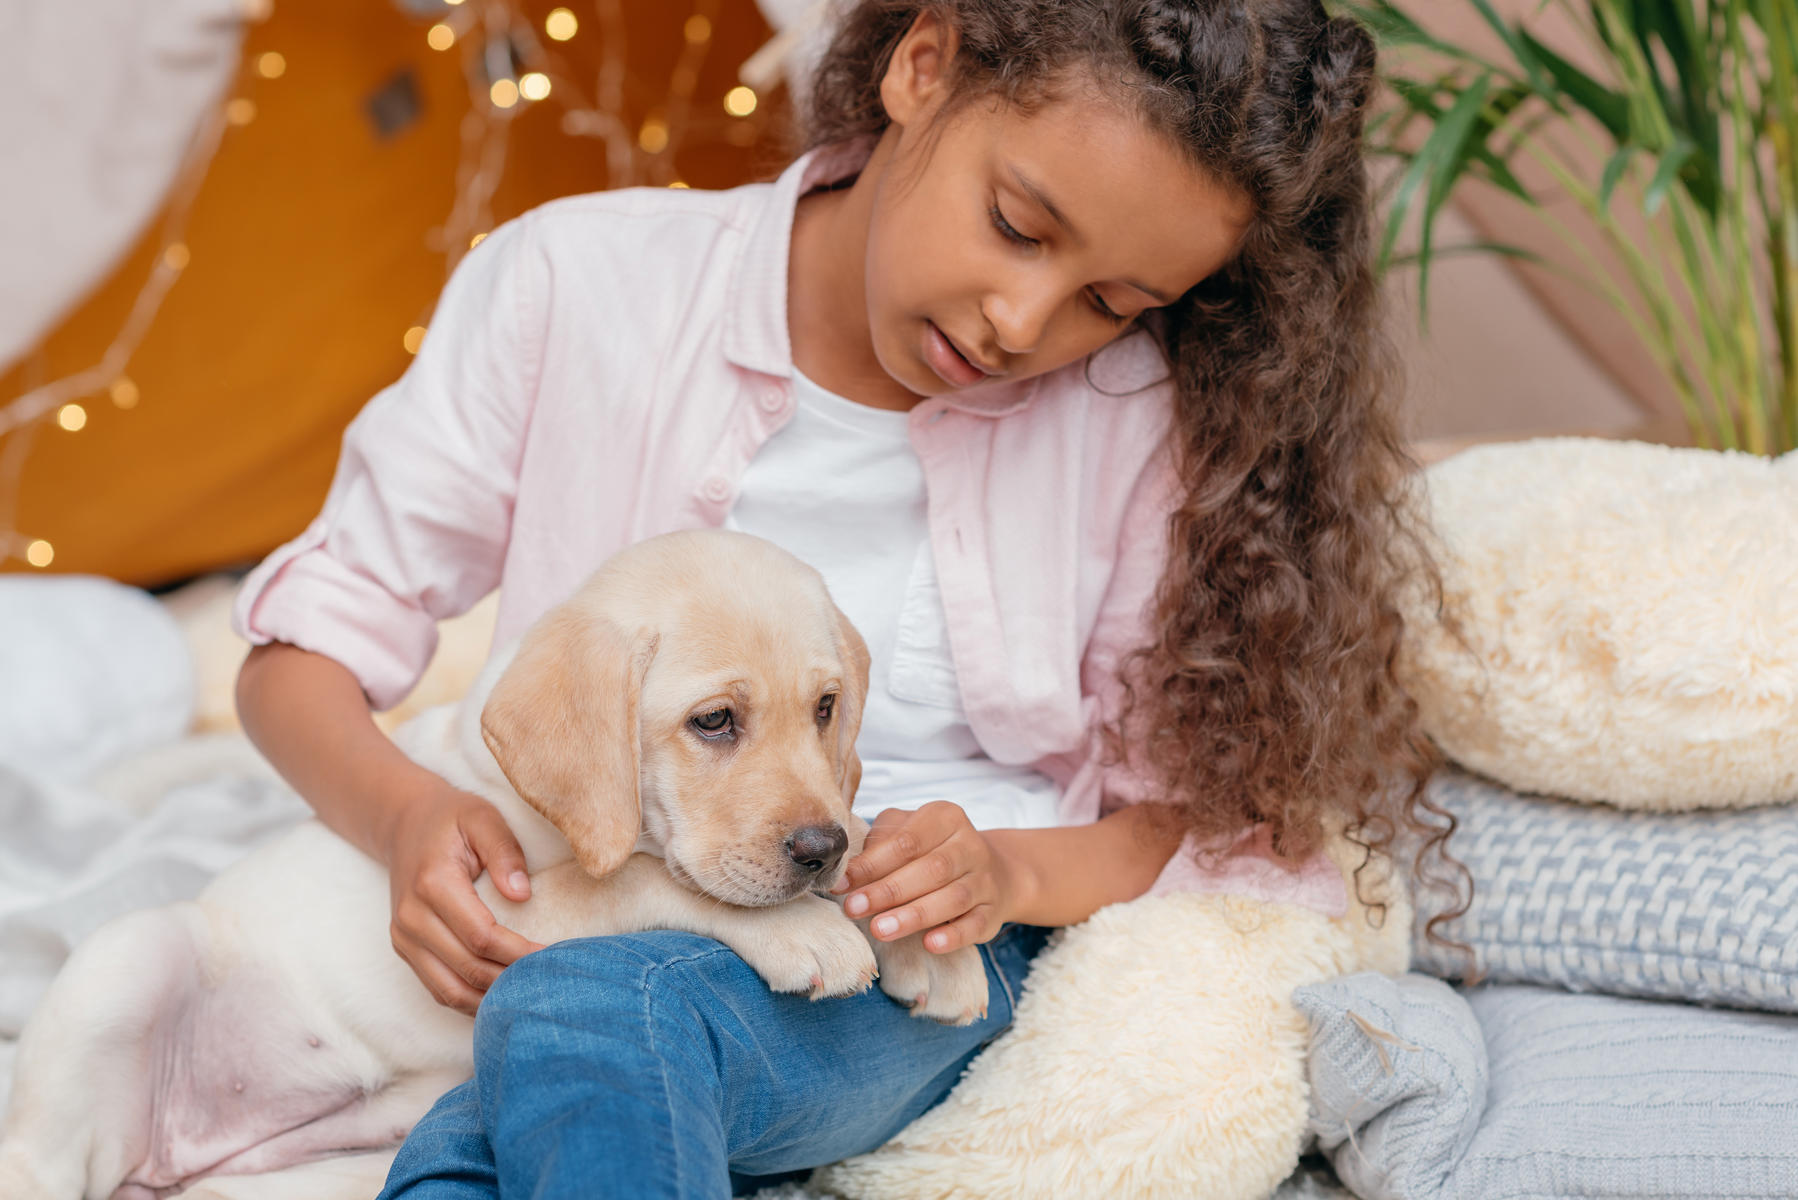 Young Girl Looking at Labrador Puppy Laying on Legs